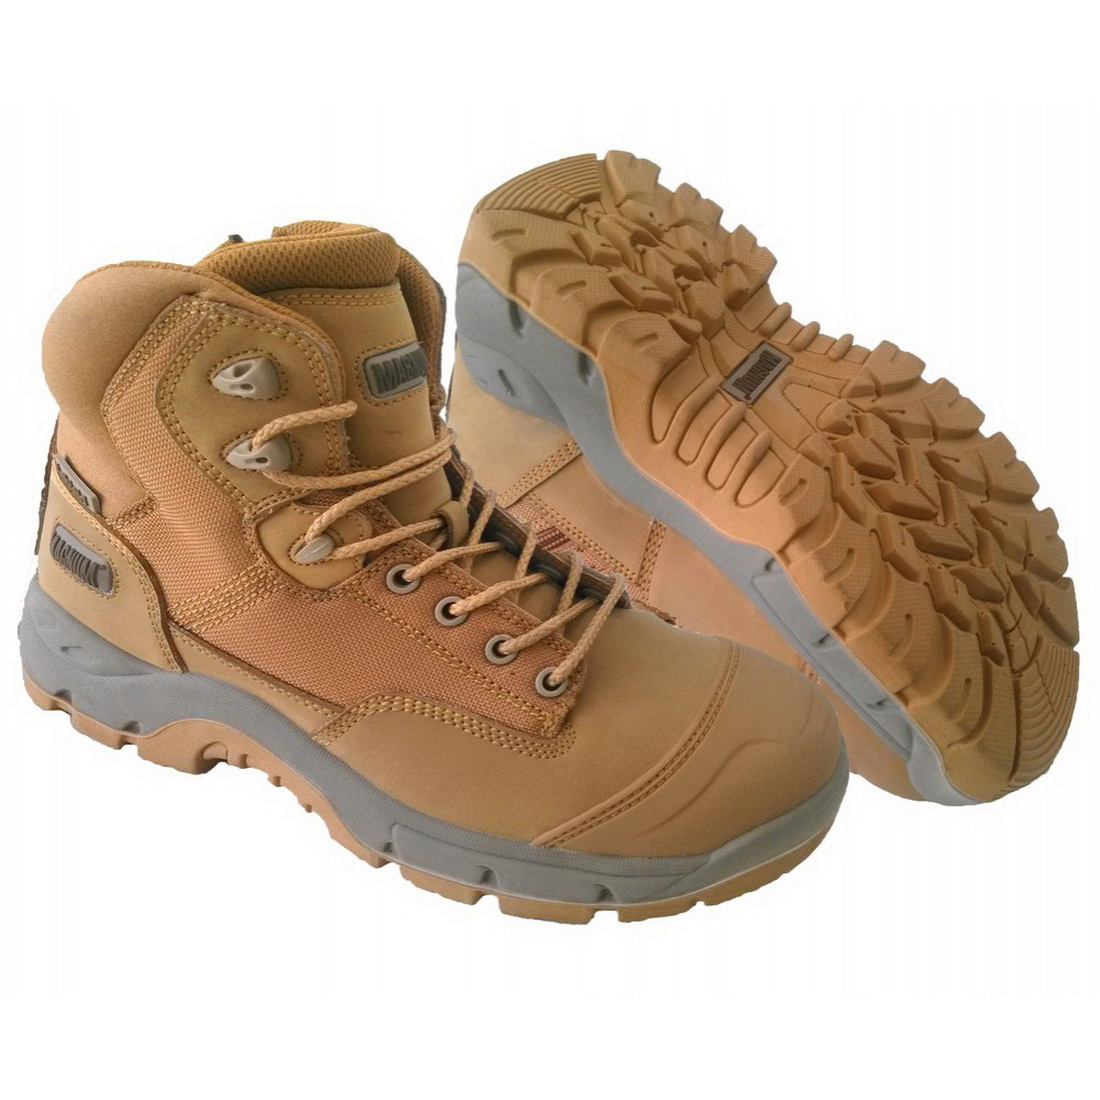 Sitemaster Lite Zip Safety Boots with Composite Toe Wheat